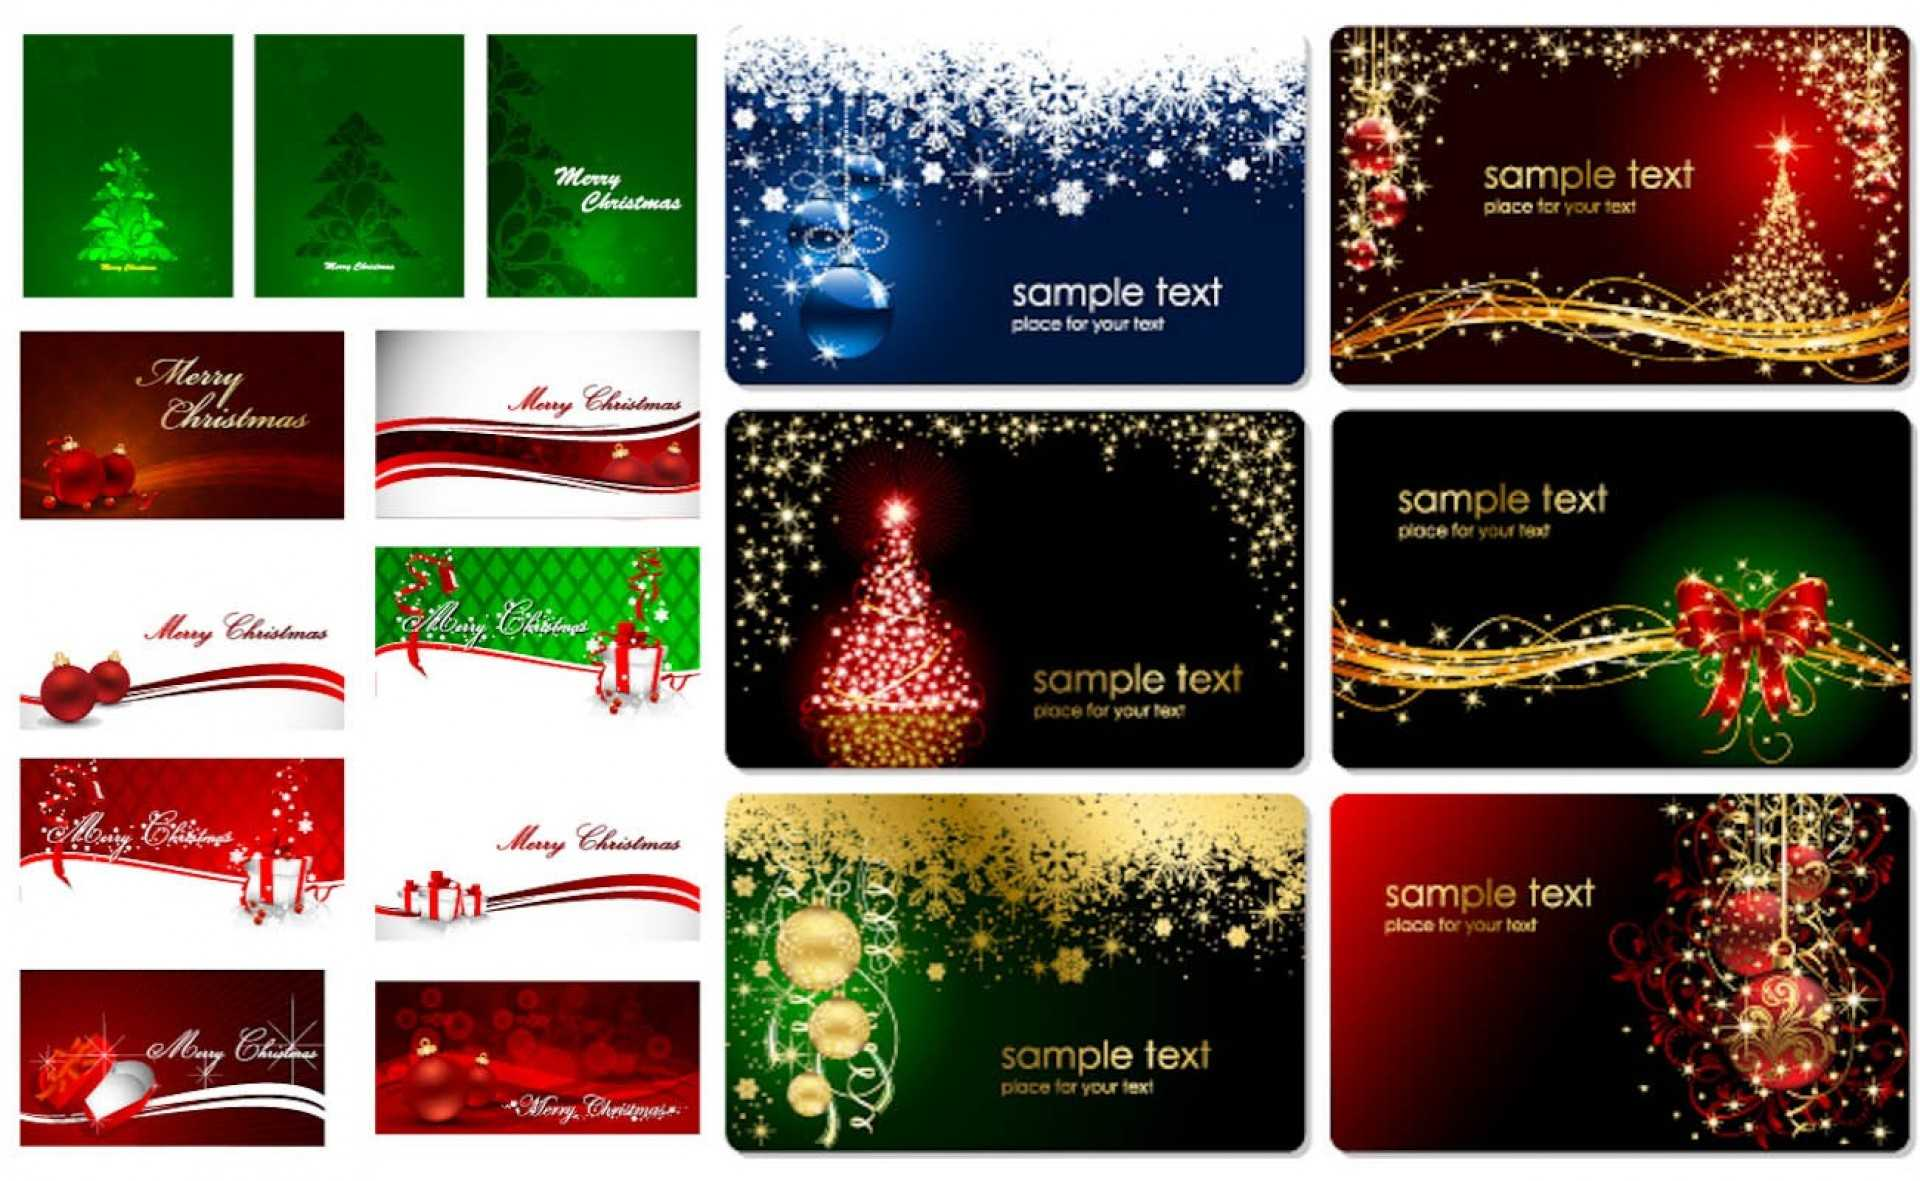 Sensational Christmas Card Templates For Photoshop Template In Free Christmas Card Templates For Photoshop